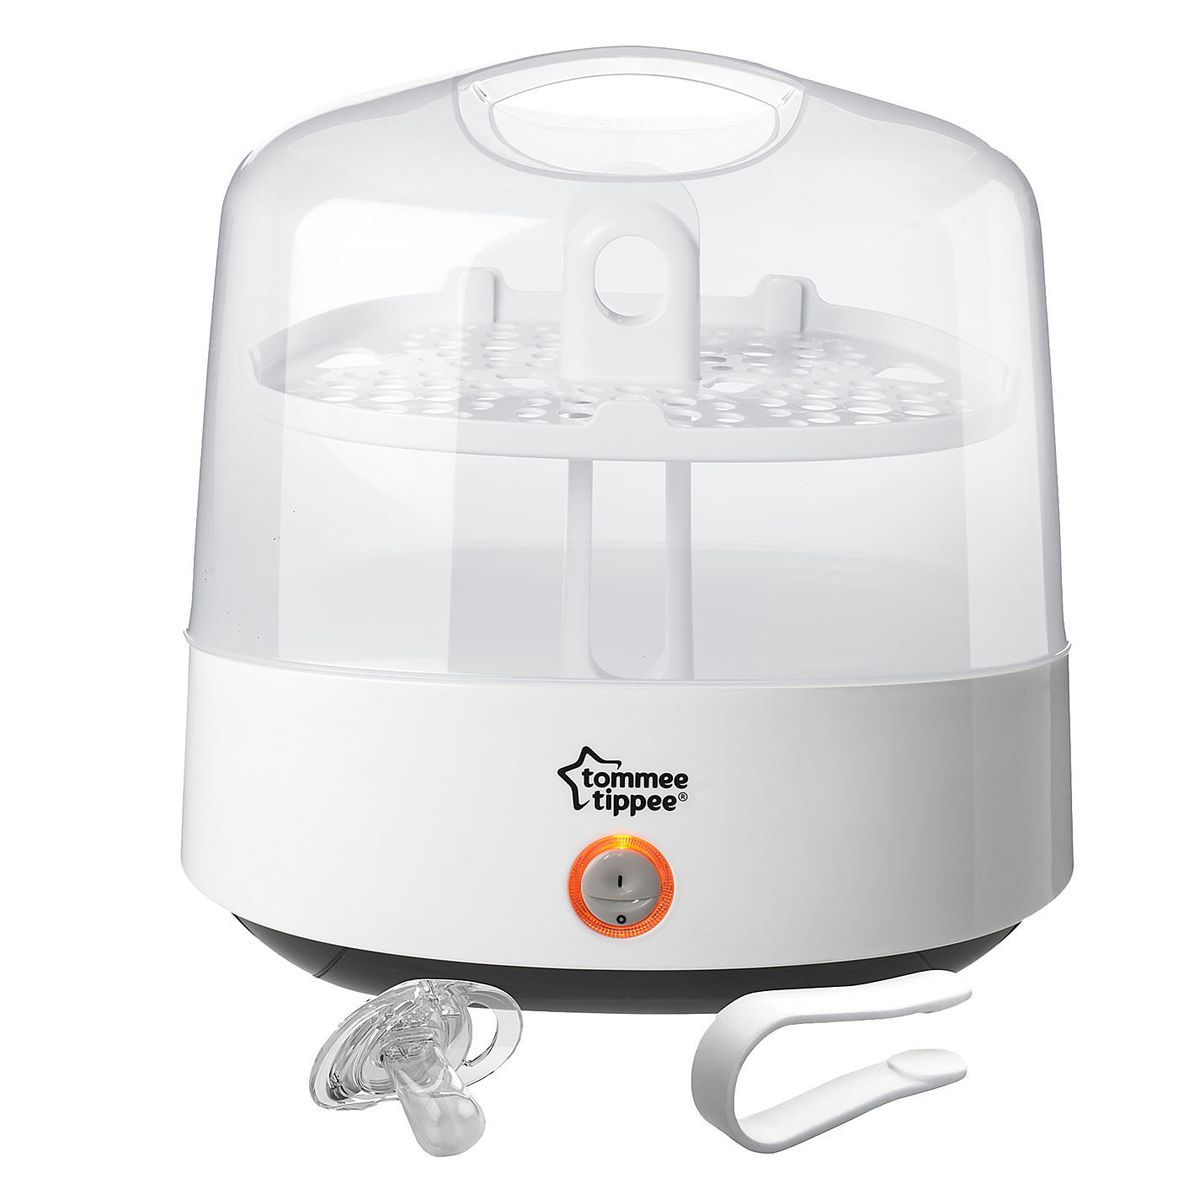 Tommee Tippee Electronic Steriliser Buy Online In South Africa